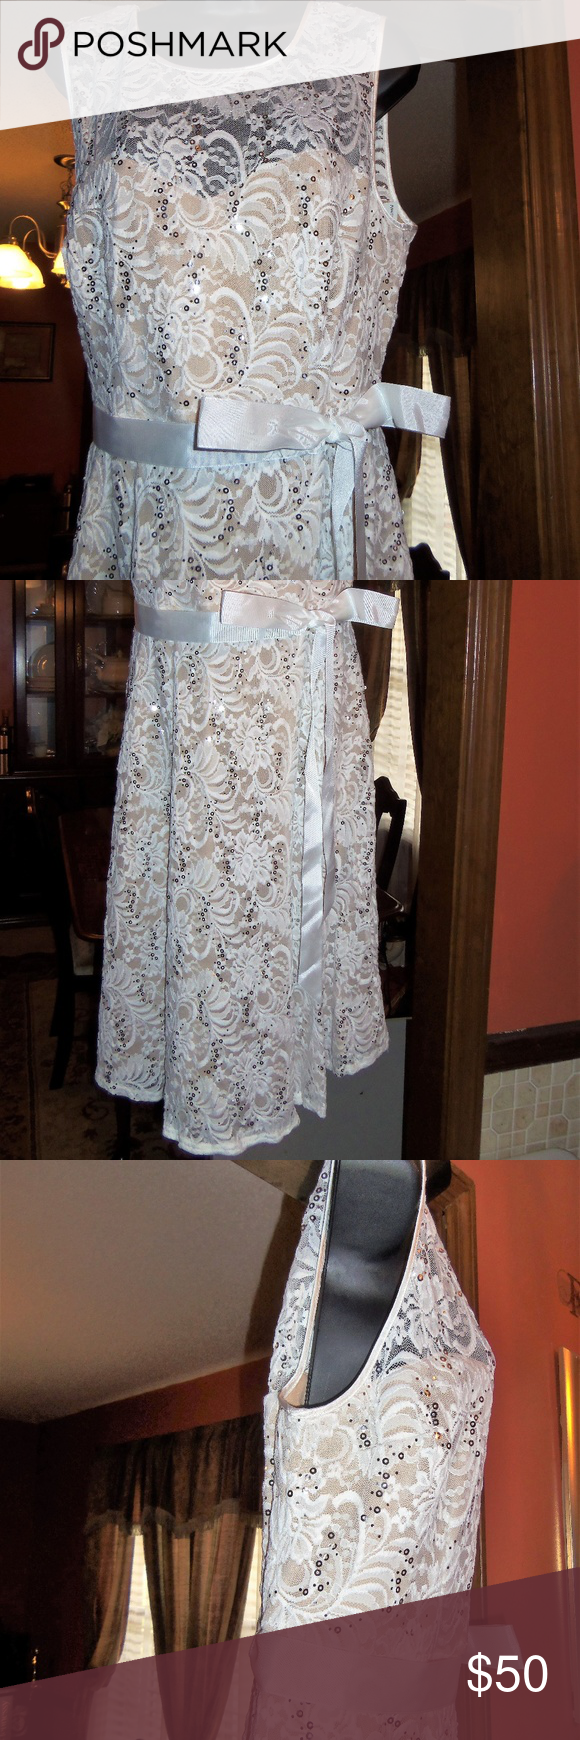 501d37eaa81 Ashley Stewart by R M Richards Sequin Ivory Dress Perfect for a wedding